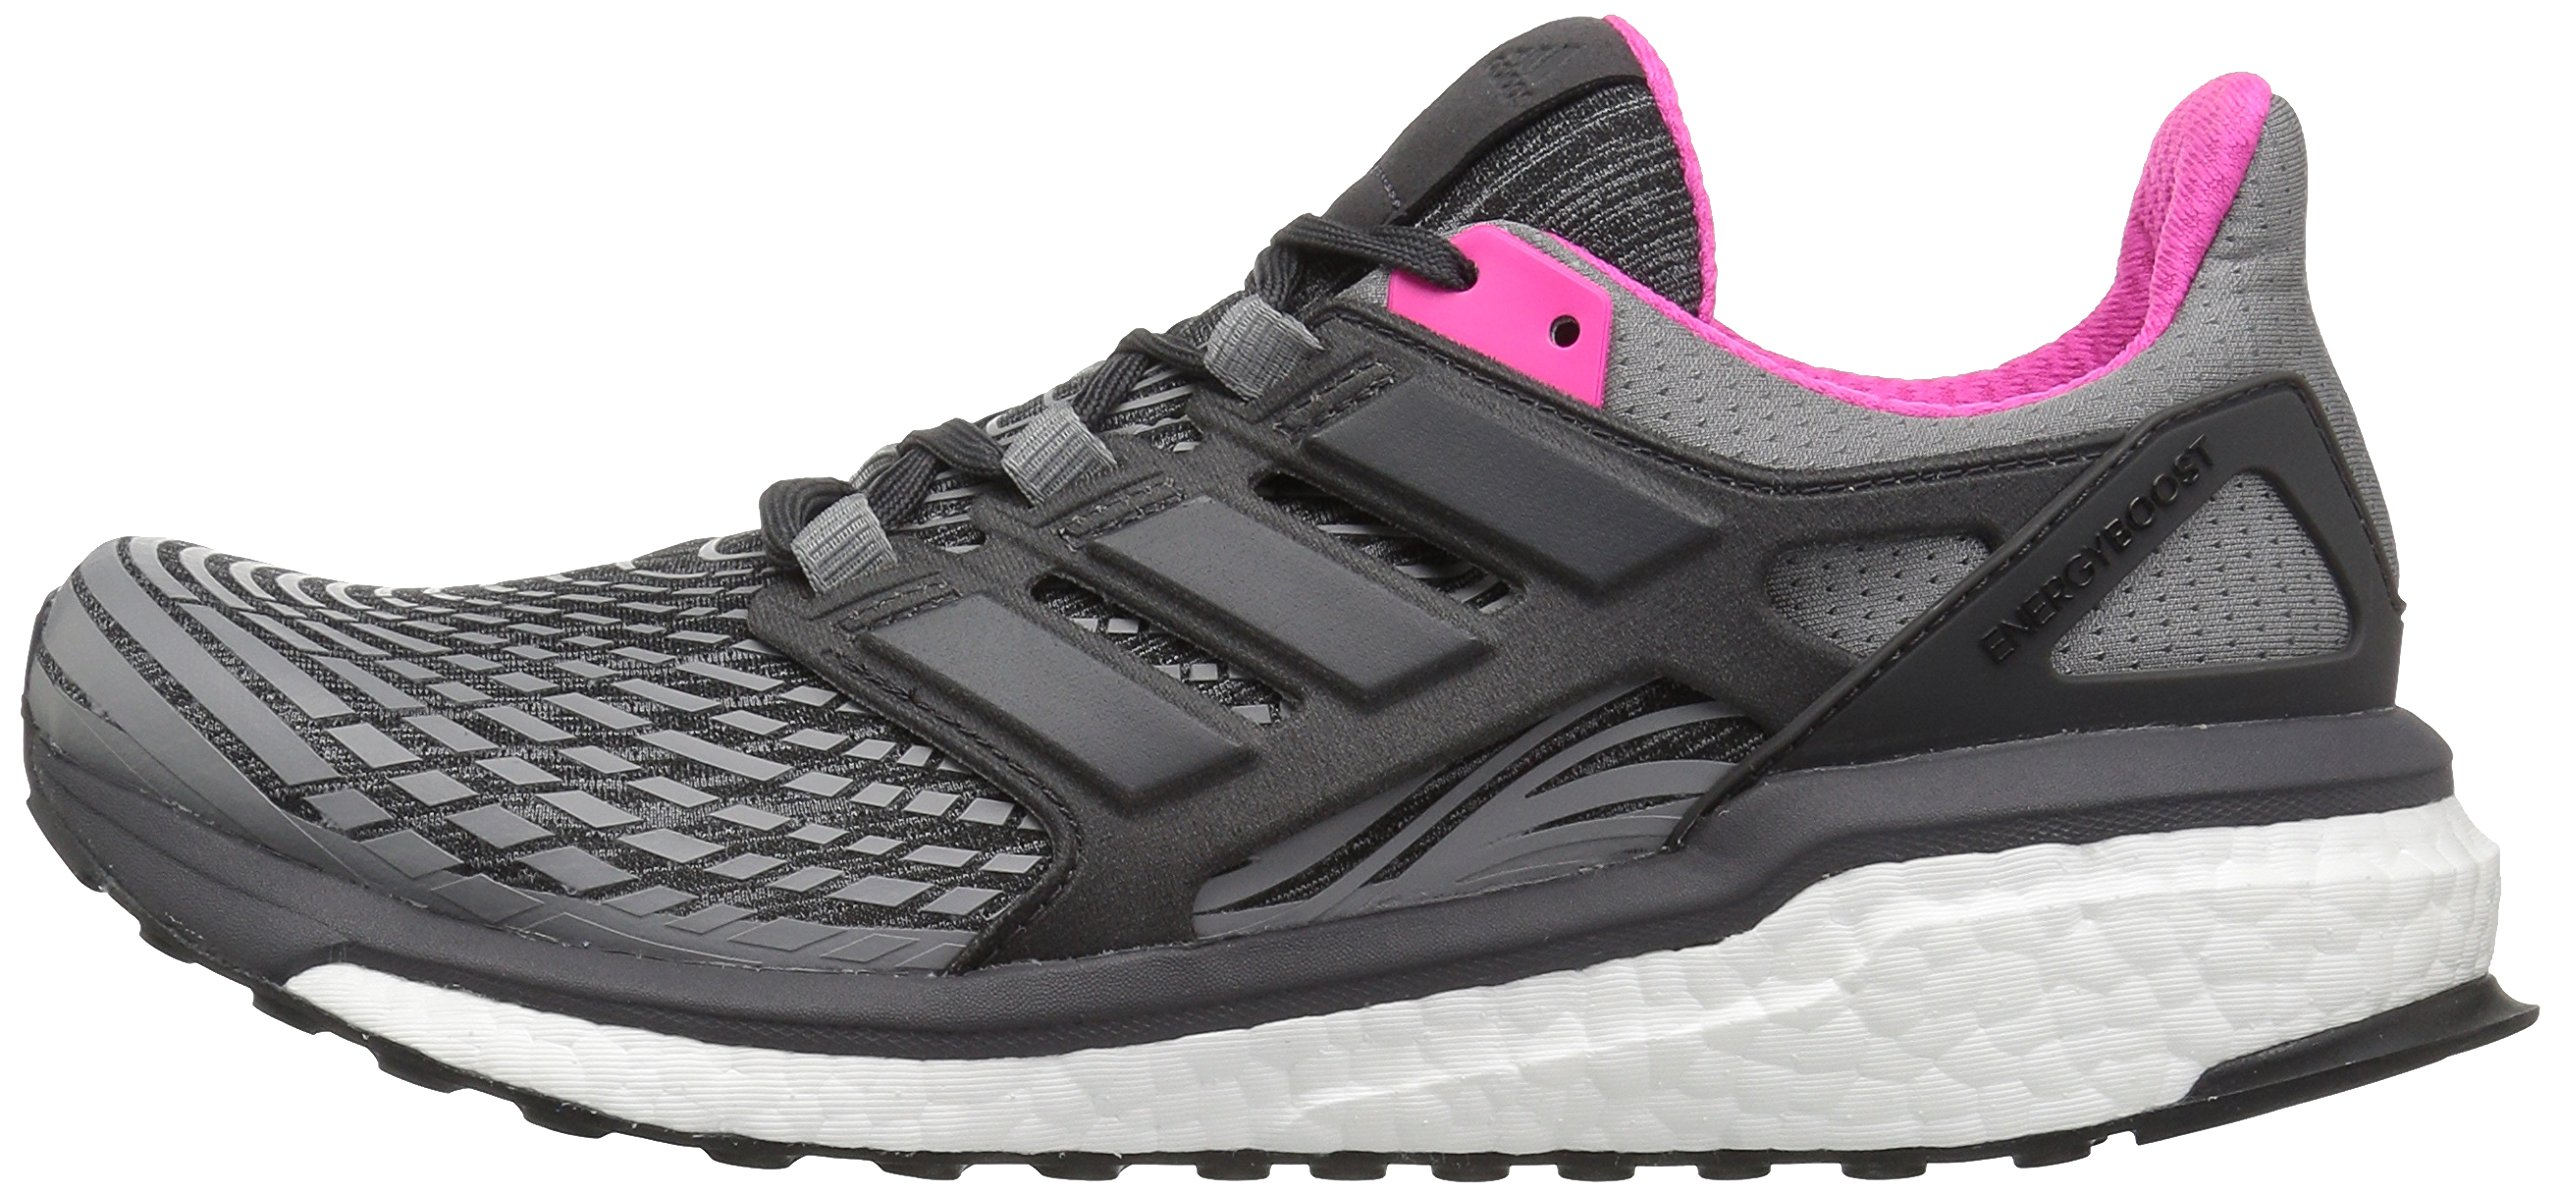 81CMYxwkVUL - adidas Womens Energy Boost Fabric Low Top Lace Up Running Sneaker